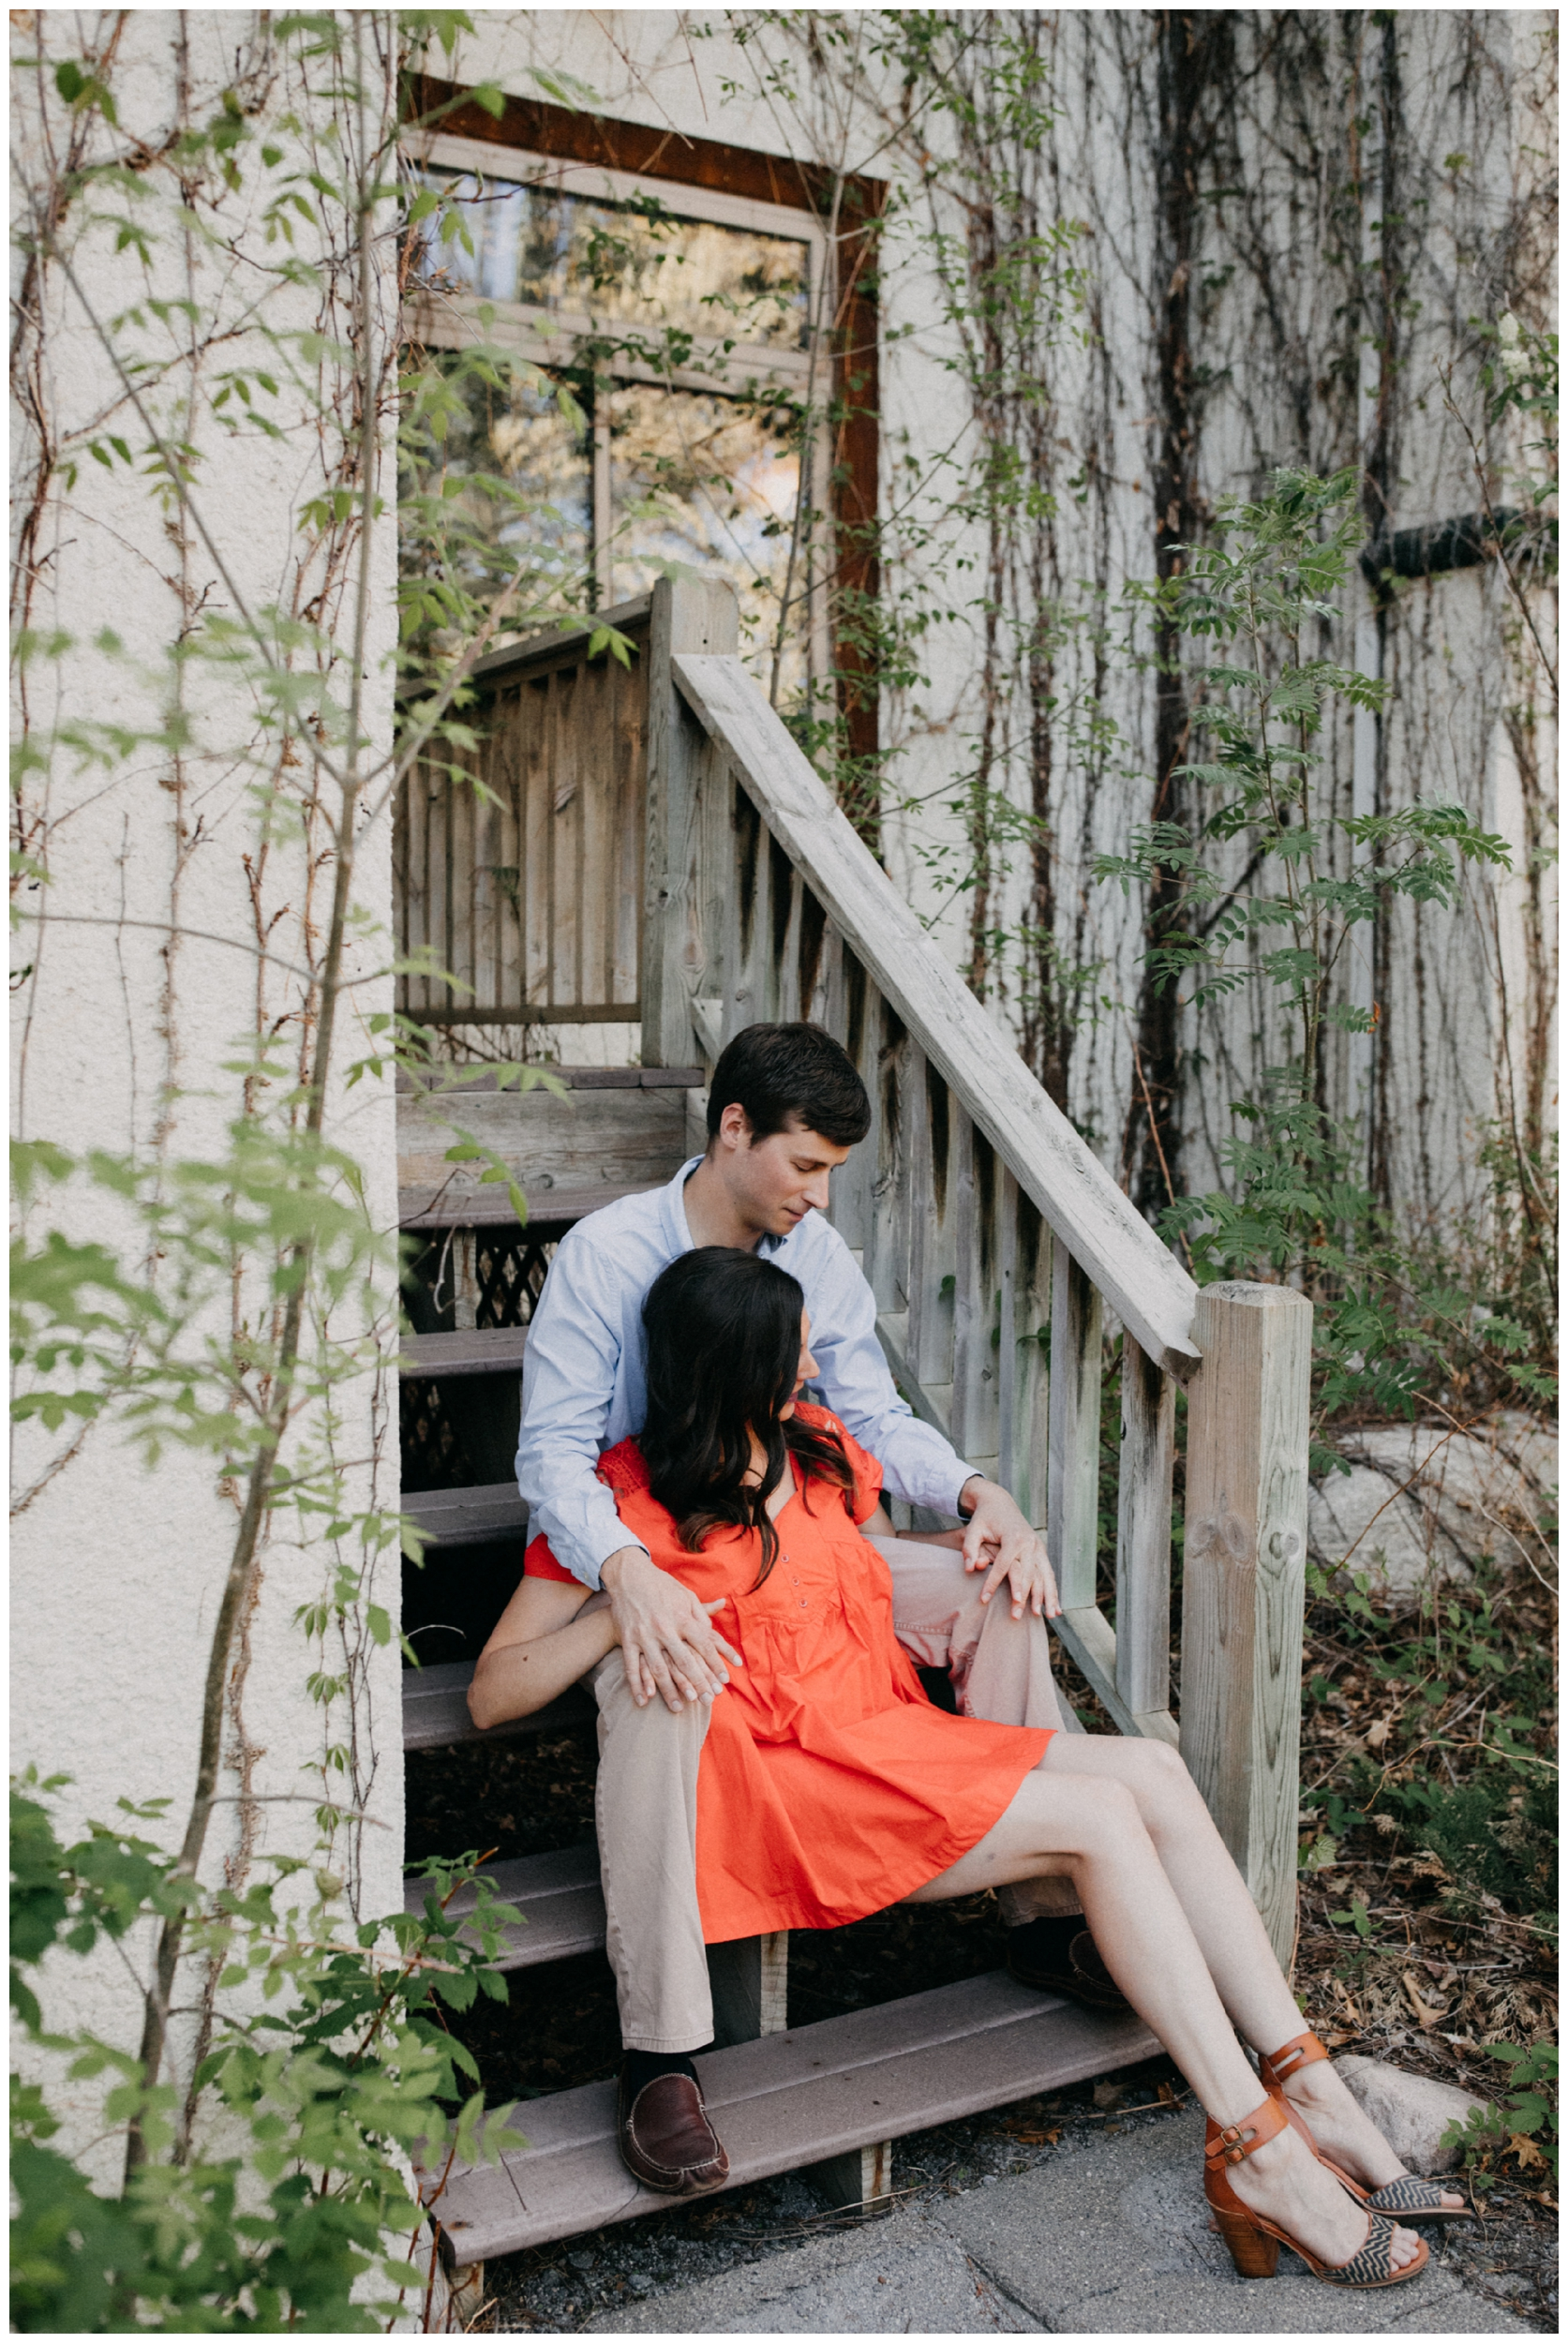 Summer engagement session in Crosslake Minnesota photographed by Britt DeZeeuw